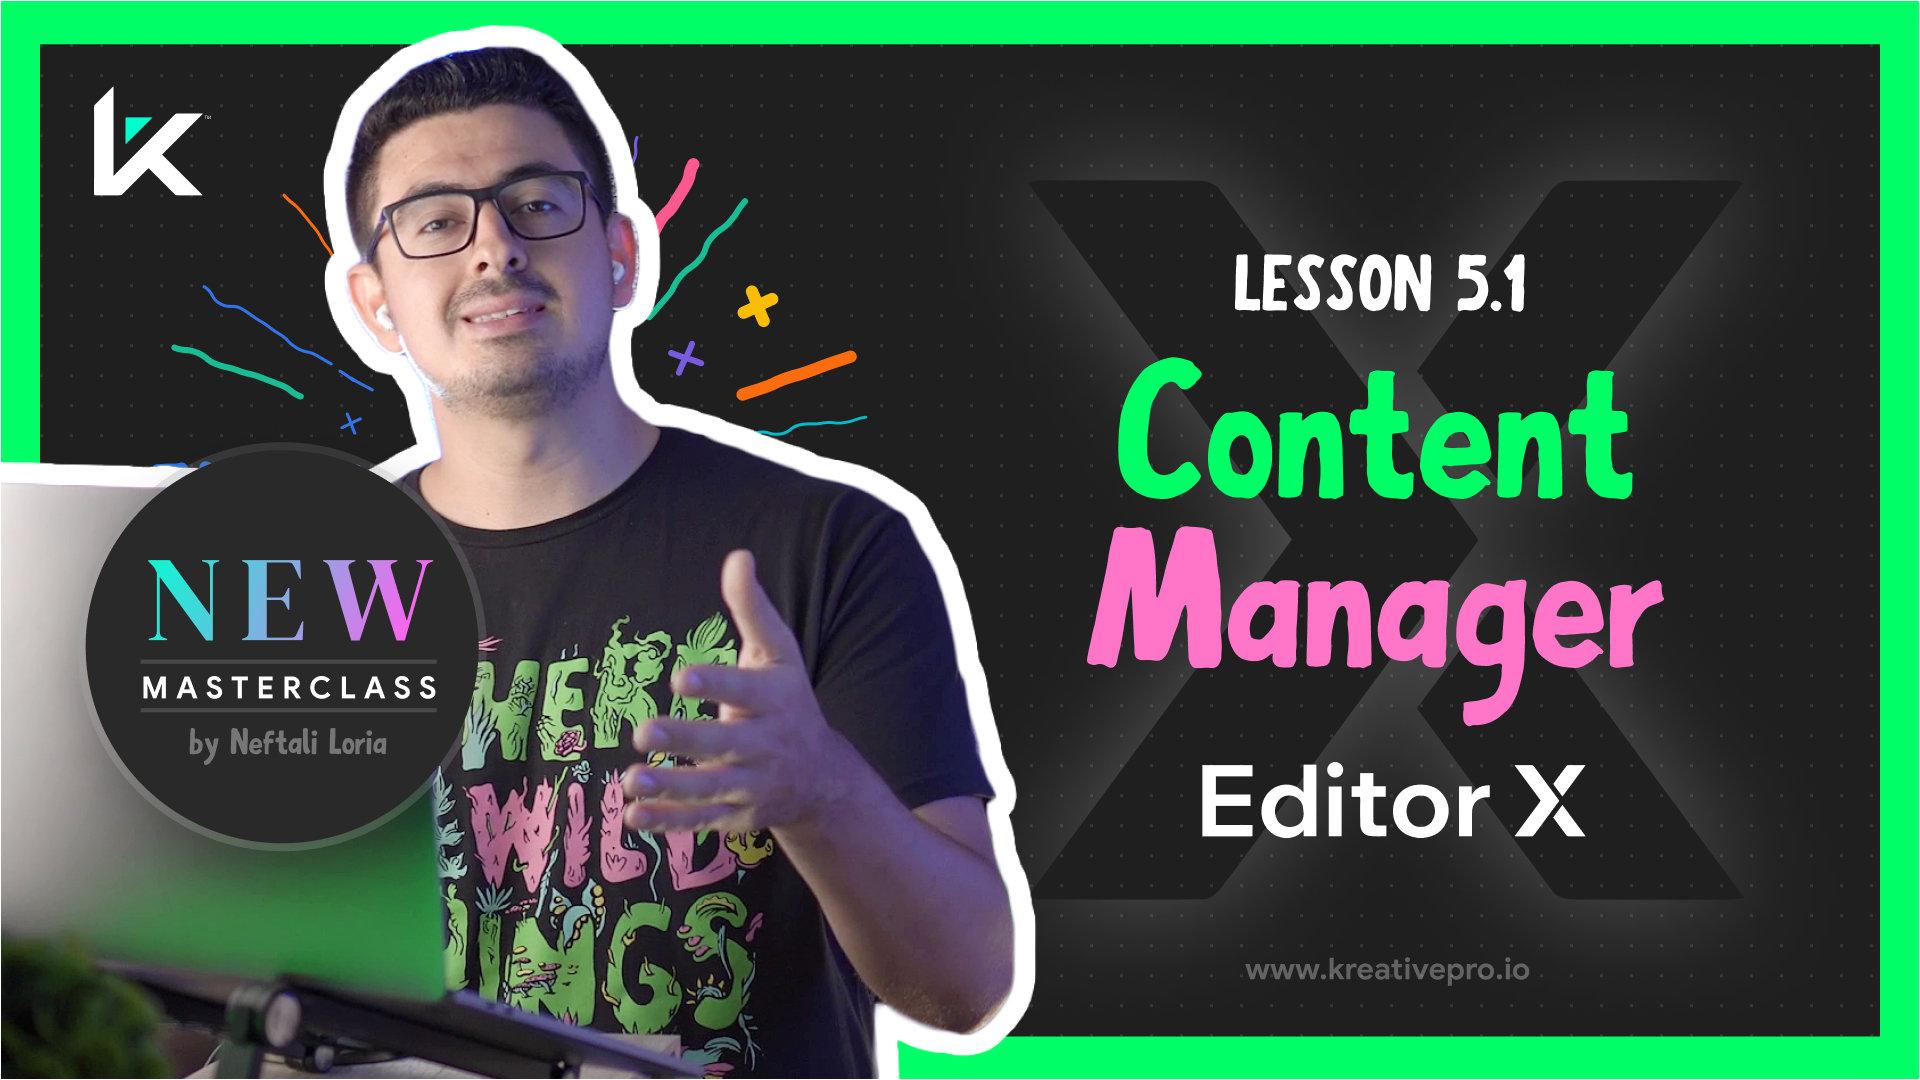 Editor X 5.1 - Content Manager